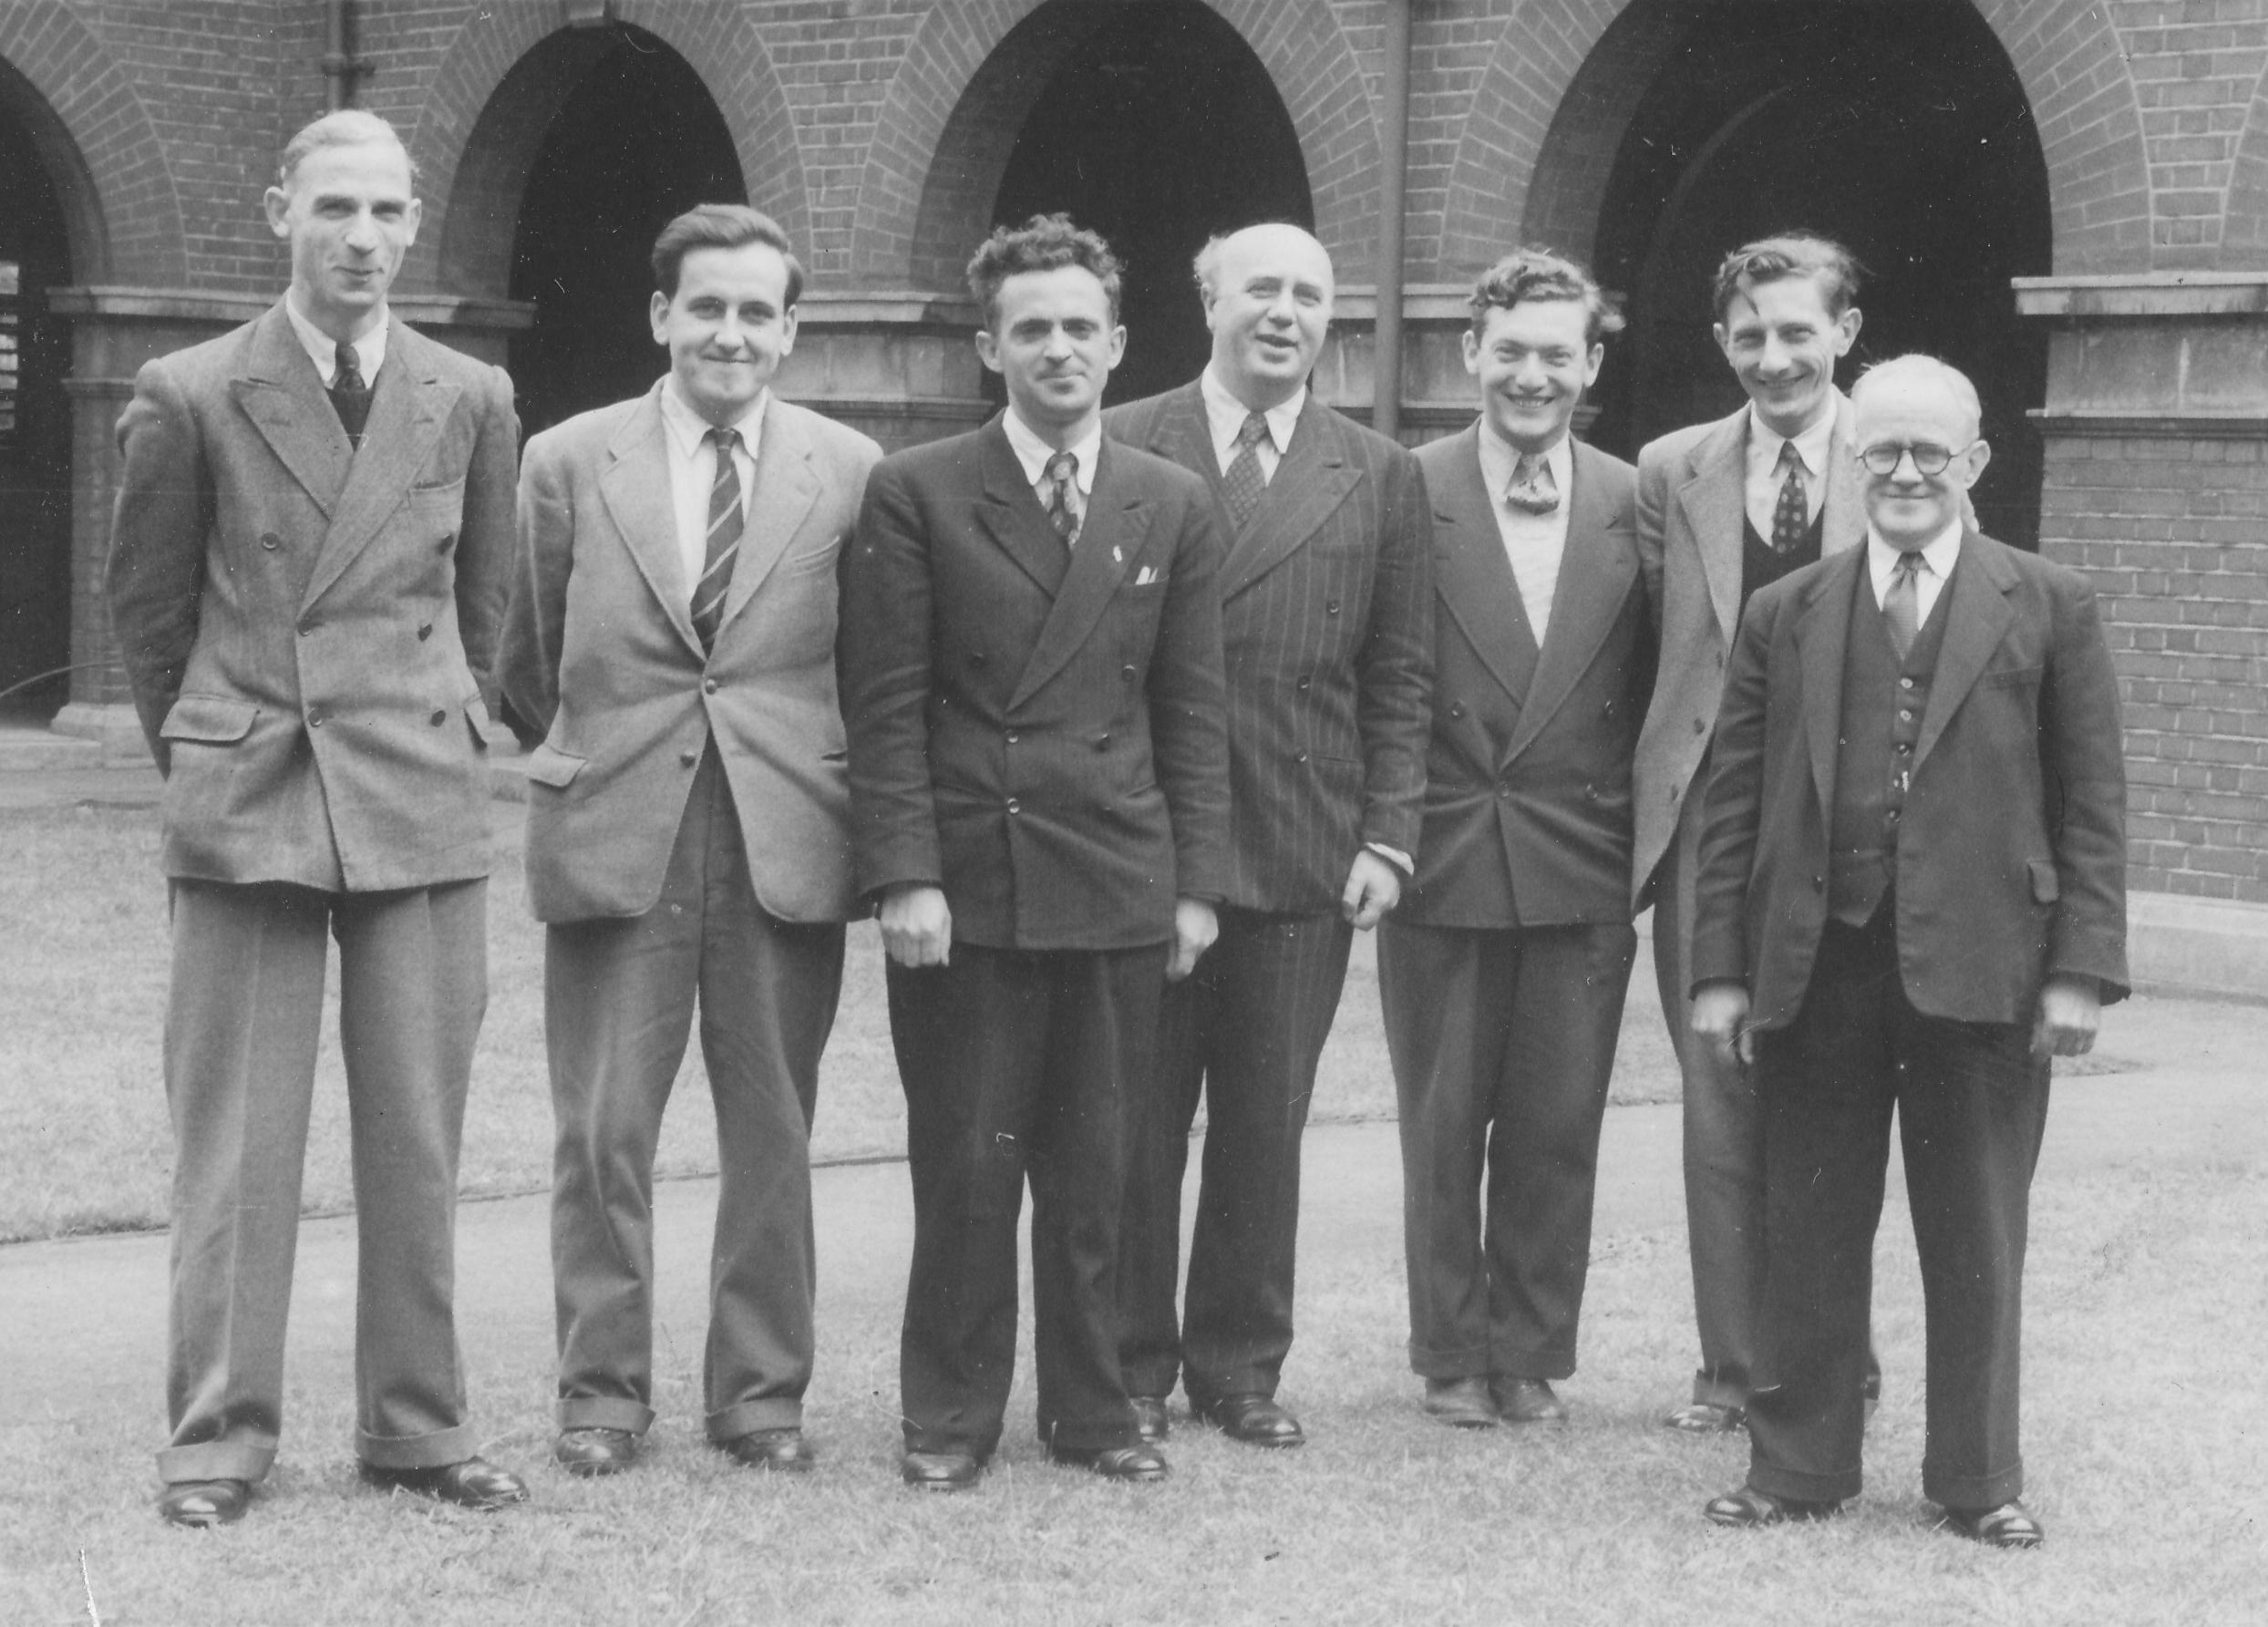 From the 1952 Ilford Congress (30 May - 2 June) and originally published in BCM, July 1952, page 187. (l-r) : Harold Israel, Alan Phillips, Bob Wade, Otto Friedman, Abe Yanofsky, Alfred William Bowen and Harold Meek. Thanks to John Saunders and Leonard Barden